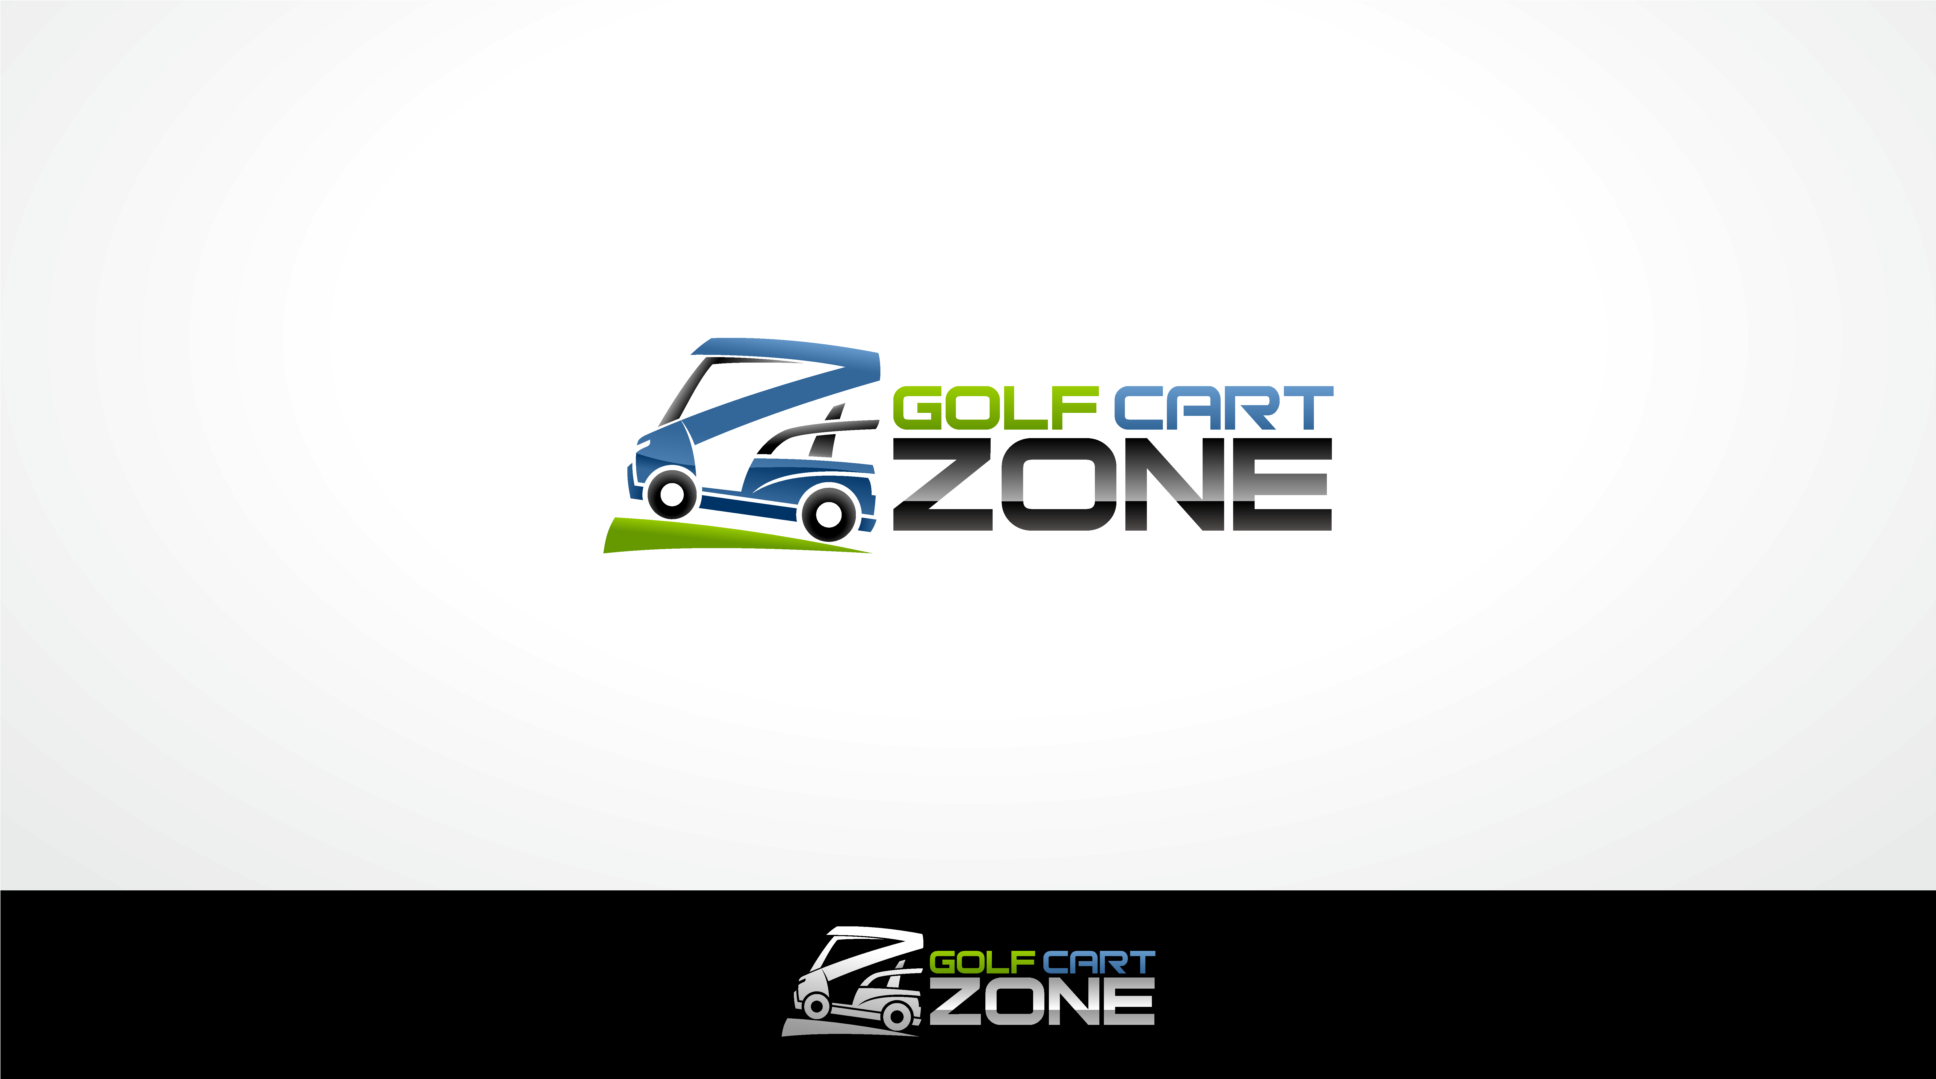 Help Golf Cart Zone with a new logo